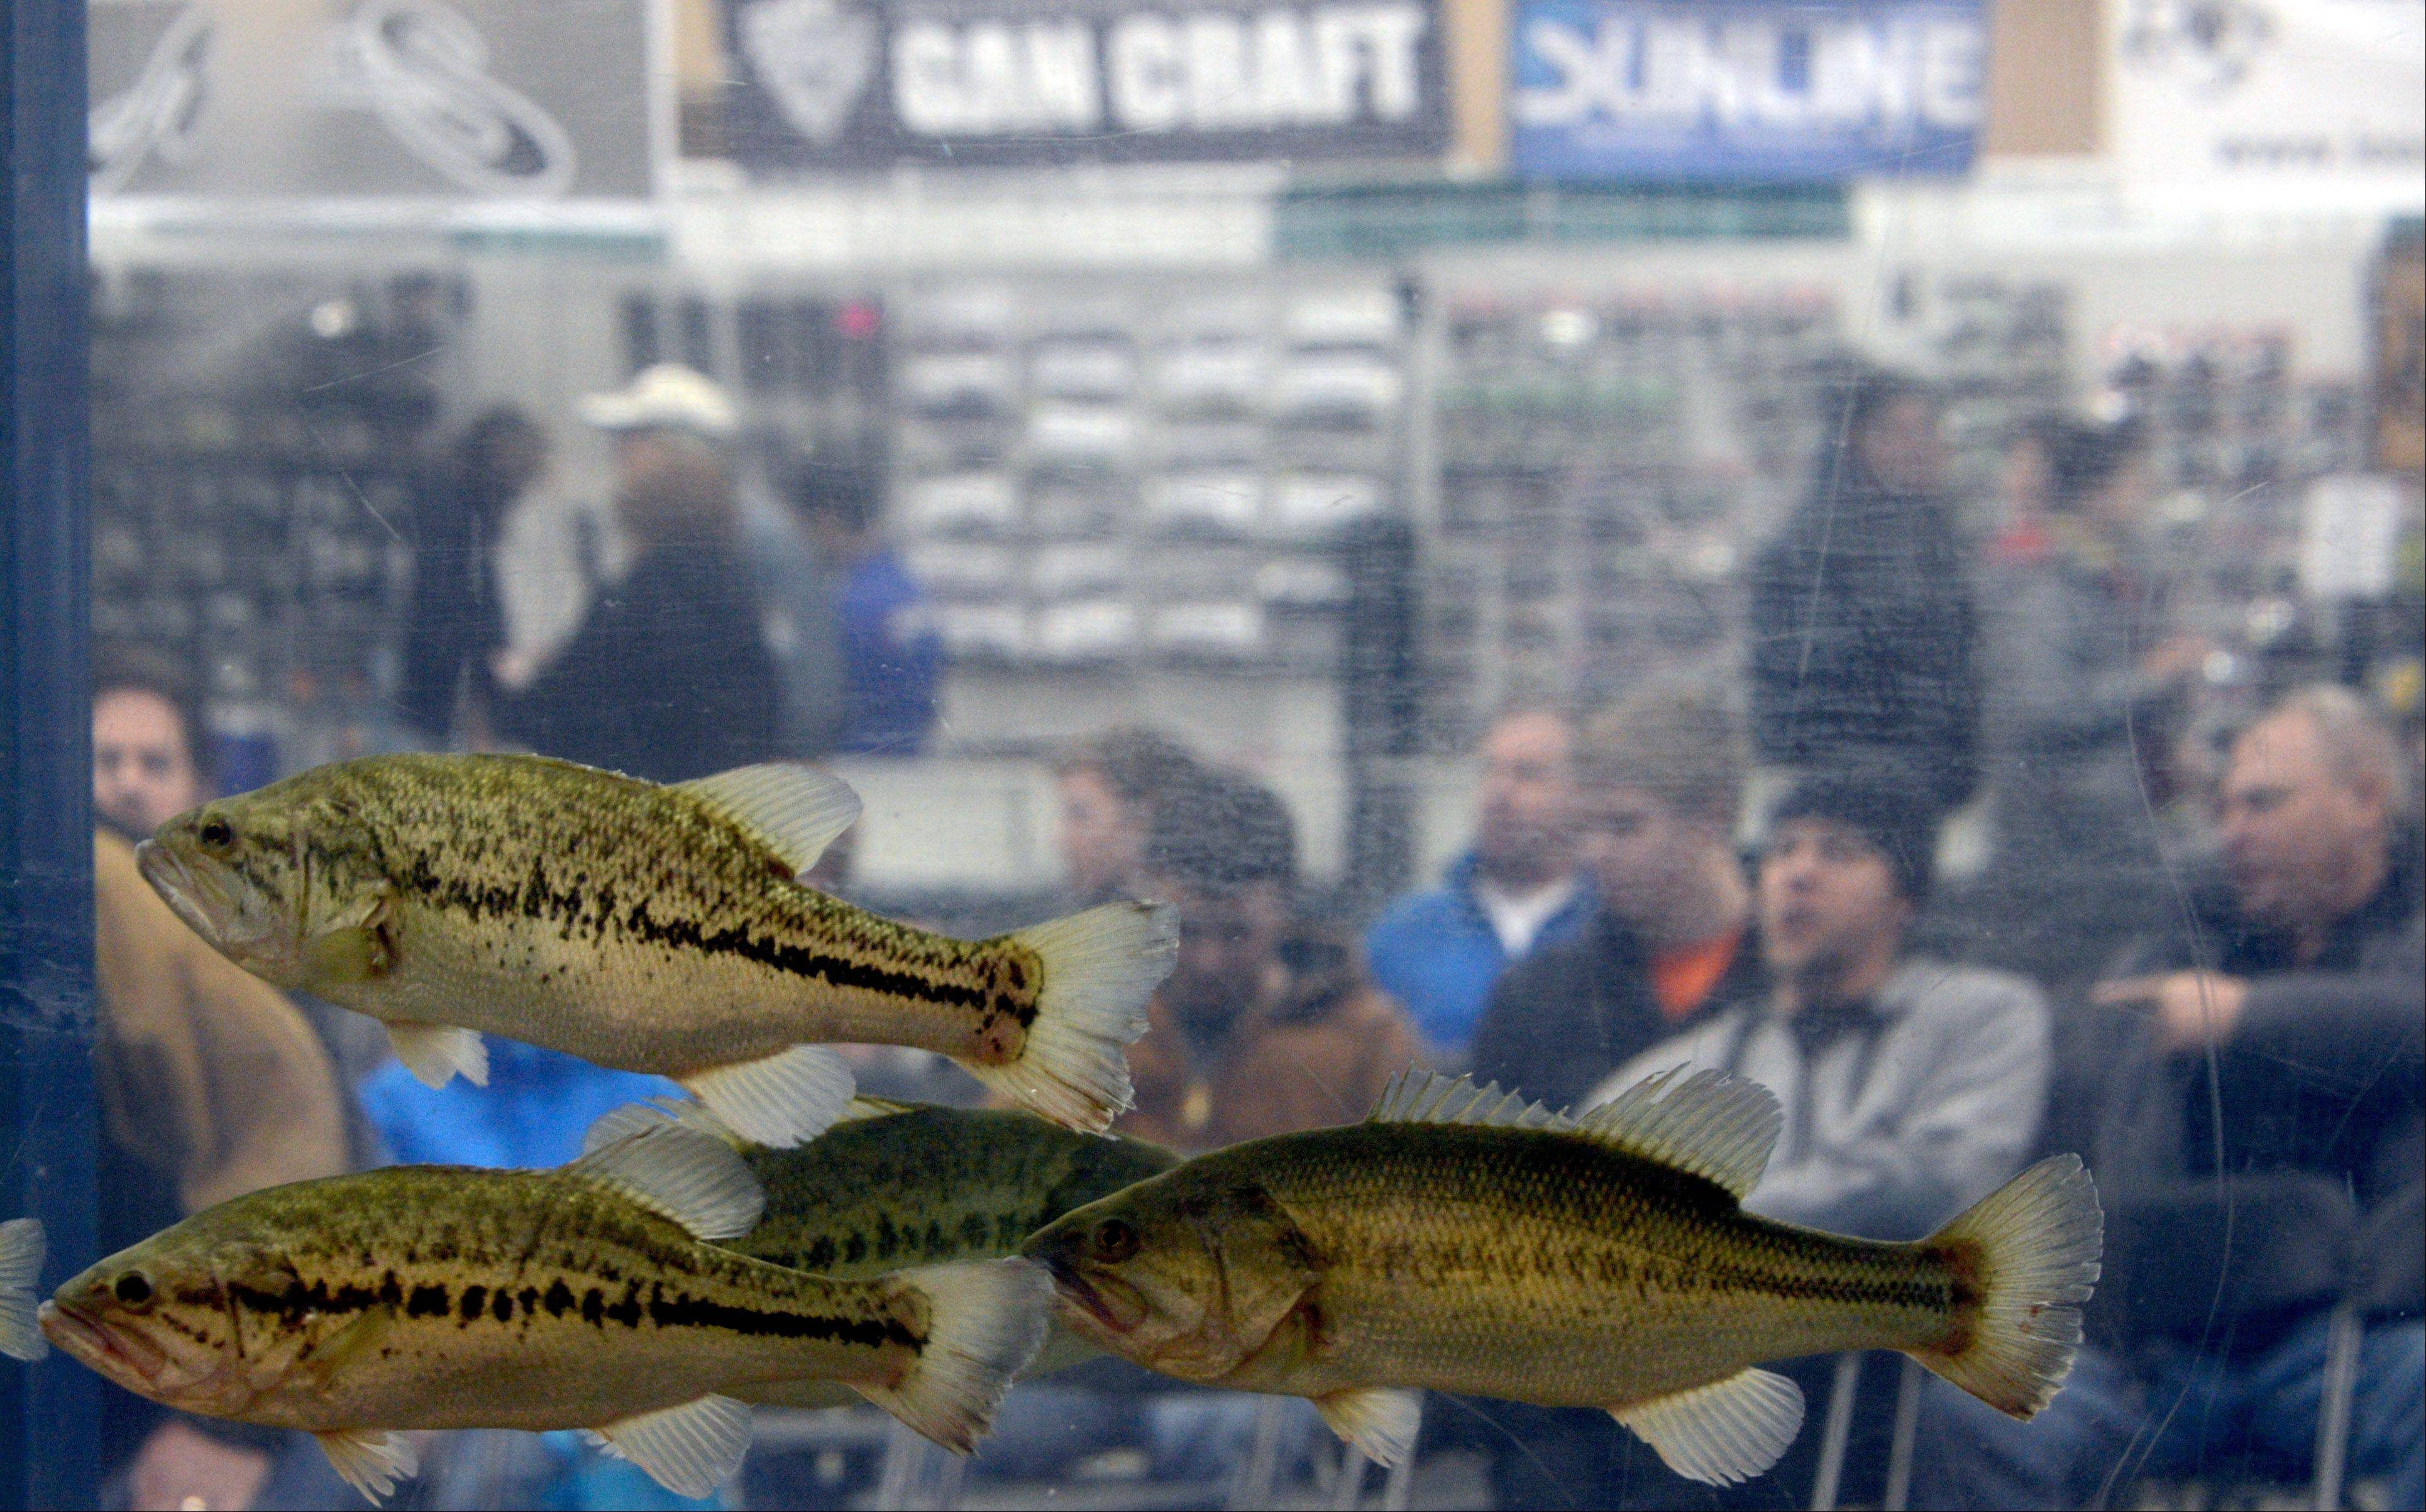 People await a presentation at the 5,000-gallon fish tank during the Chicagoland Fishing Travel & Outdoor Expo at Renaissance Schaumburg Hotel and Convention Center.